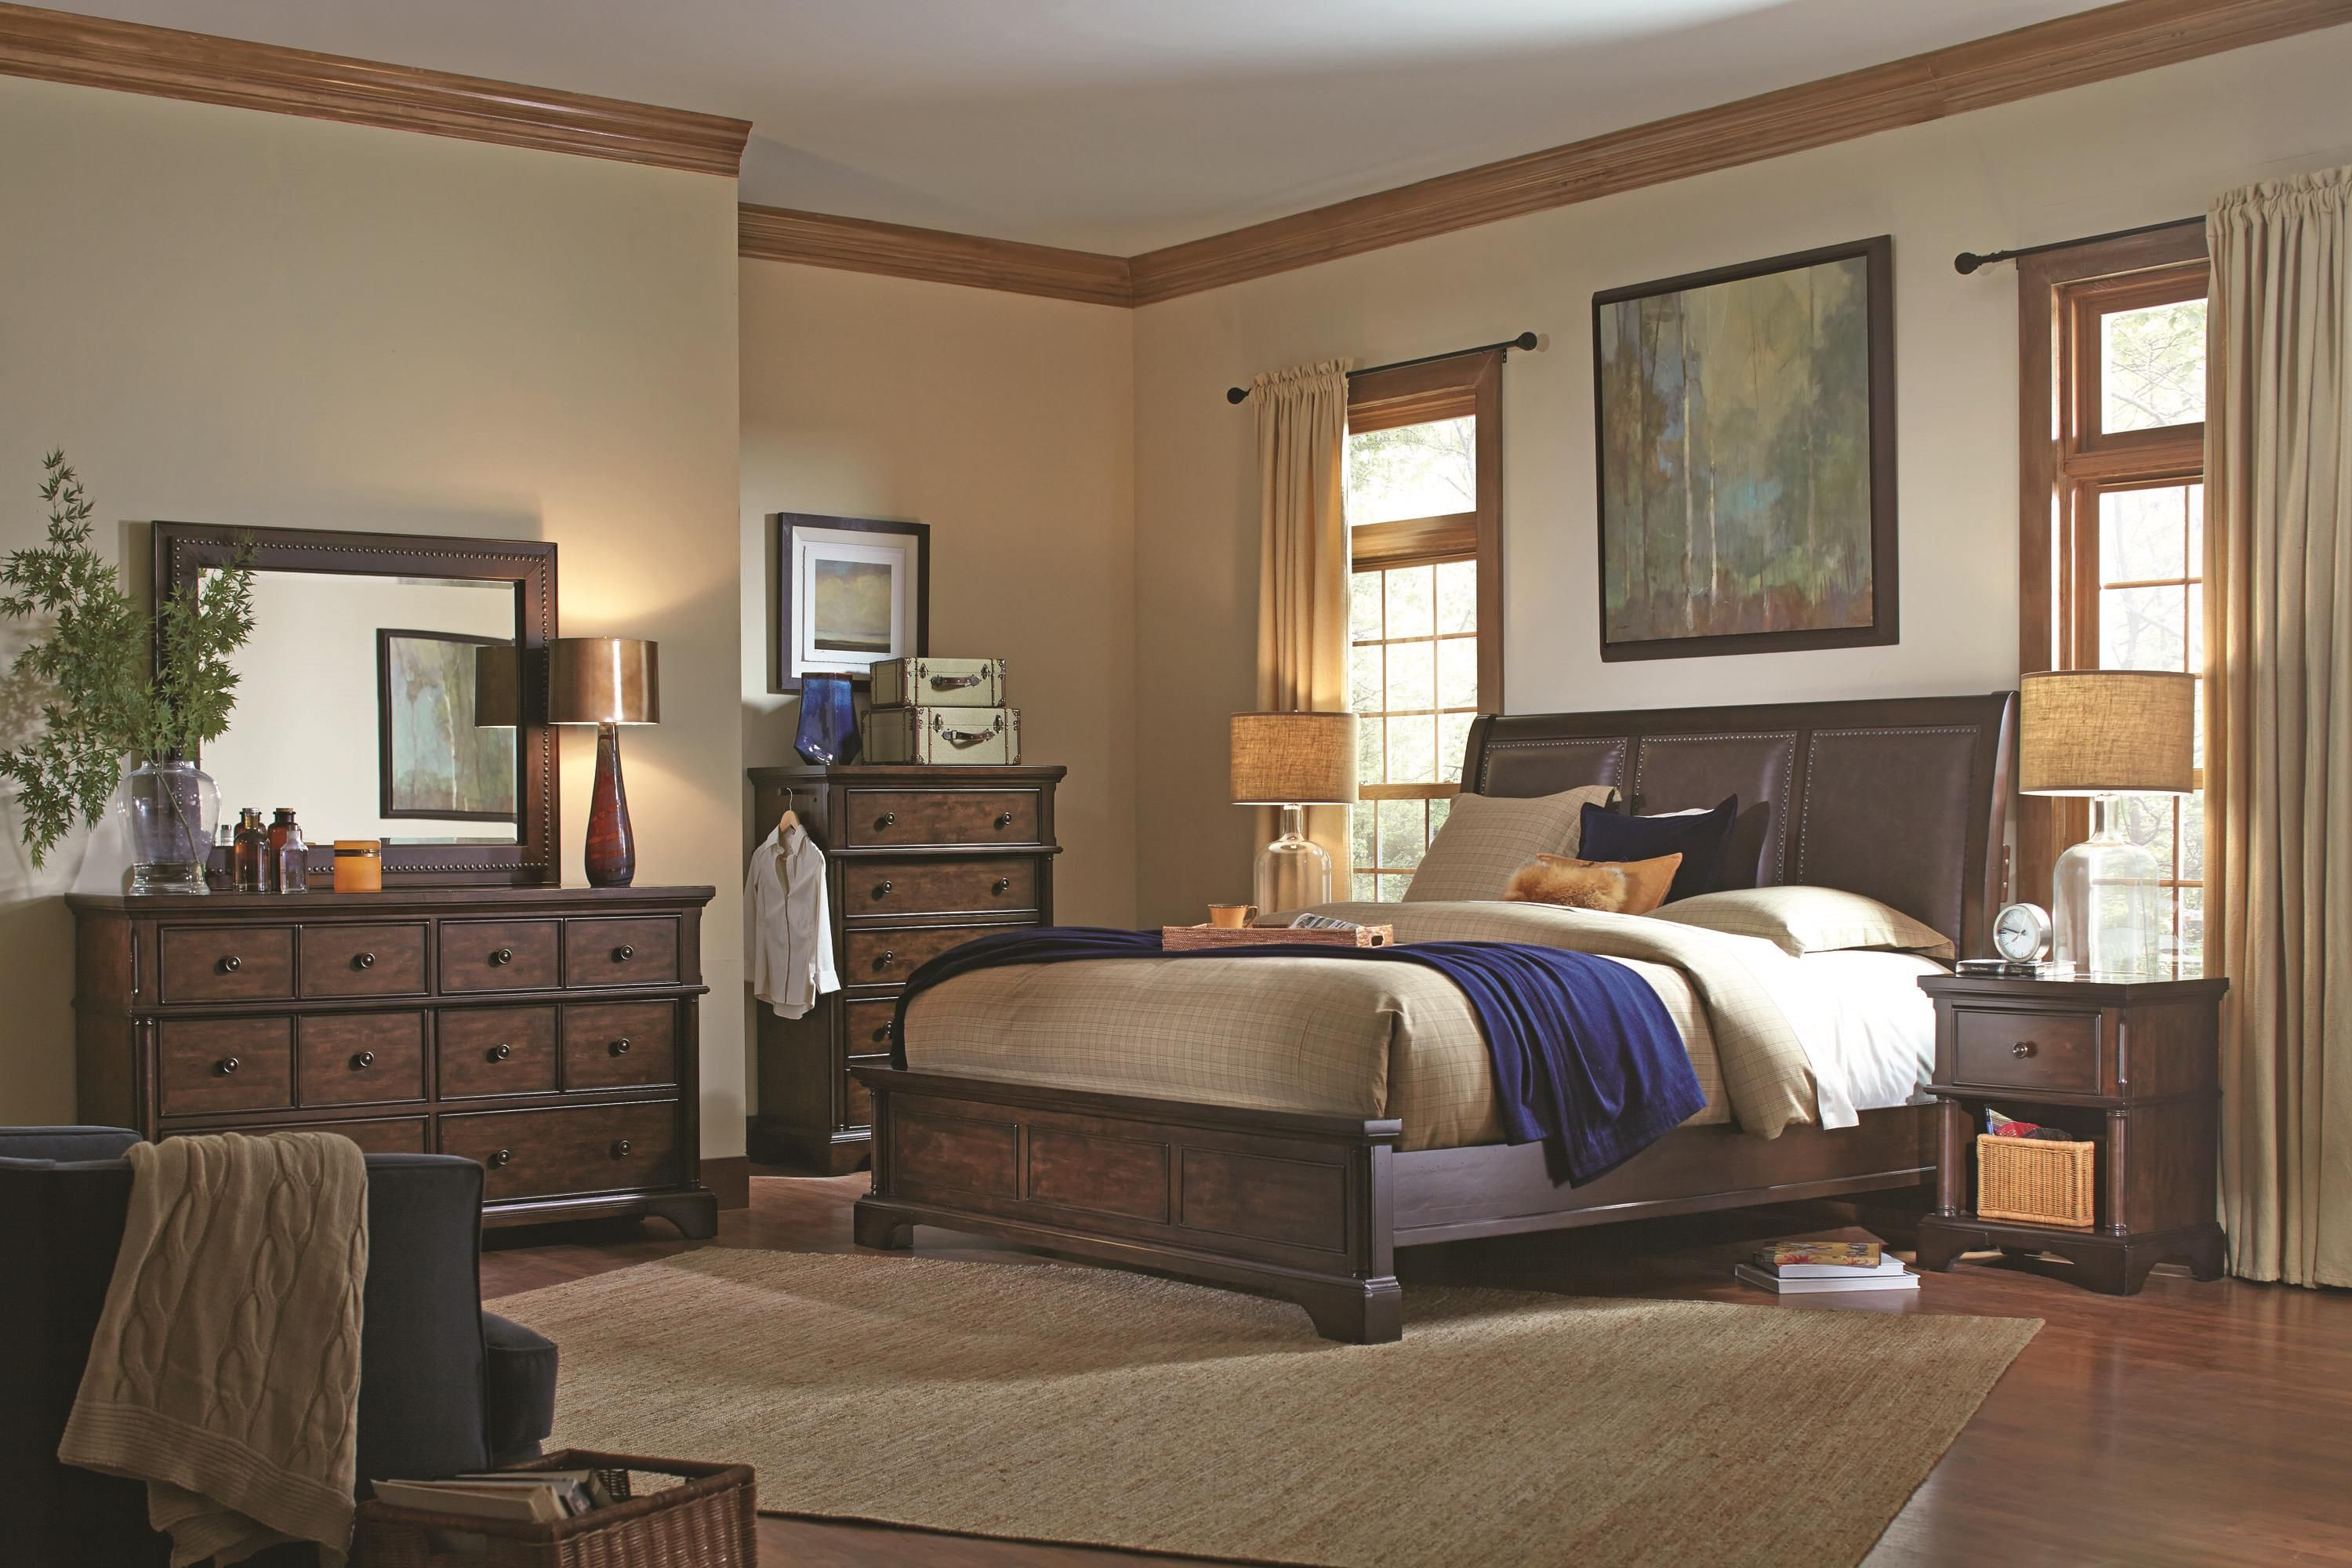 The Rich Mocha Brown Finish On Knotty Alder Veneer Makes This Empire Style Sleigh Bed A Warm